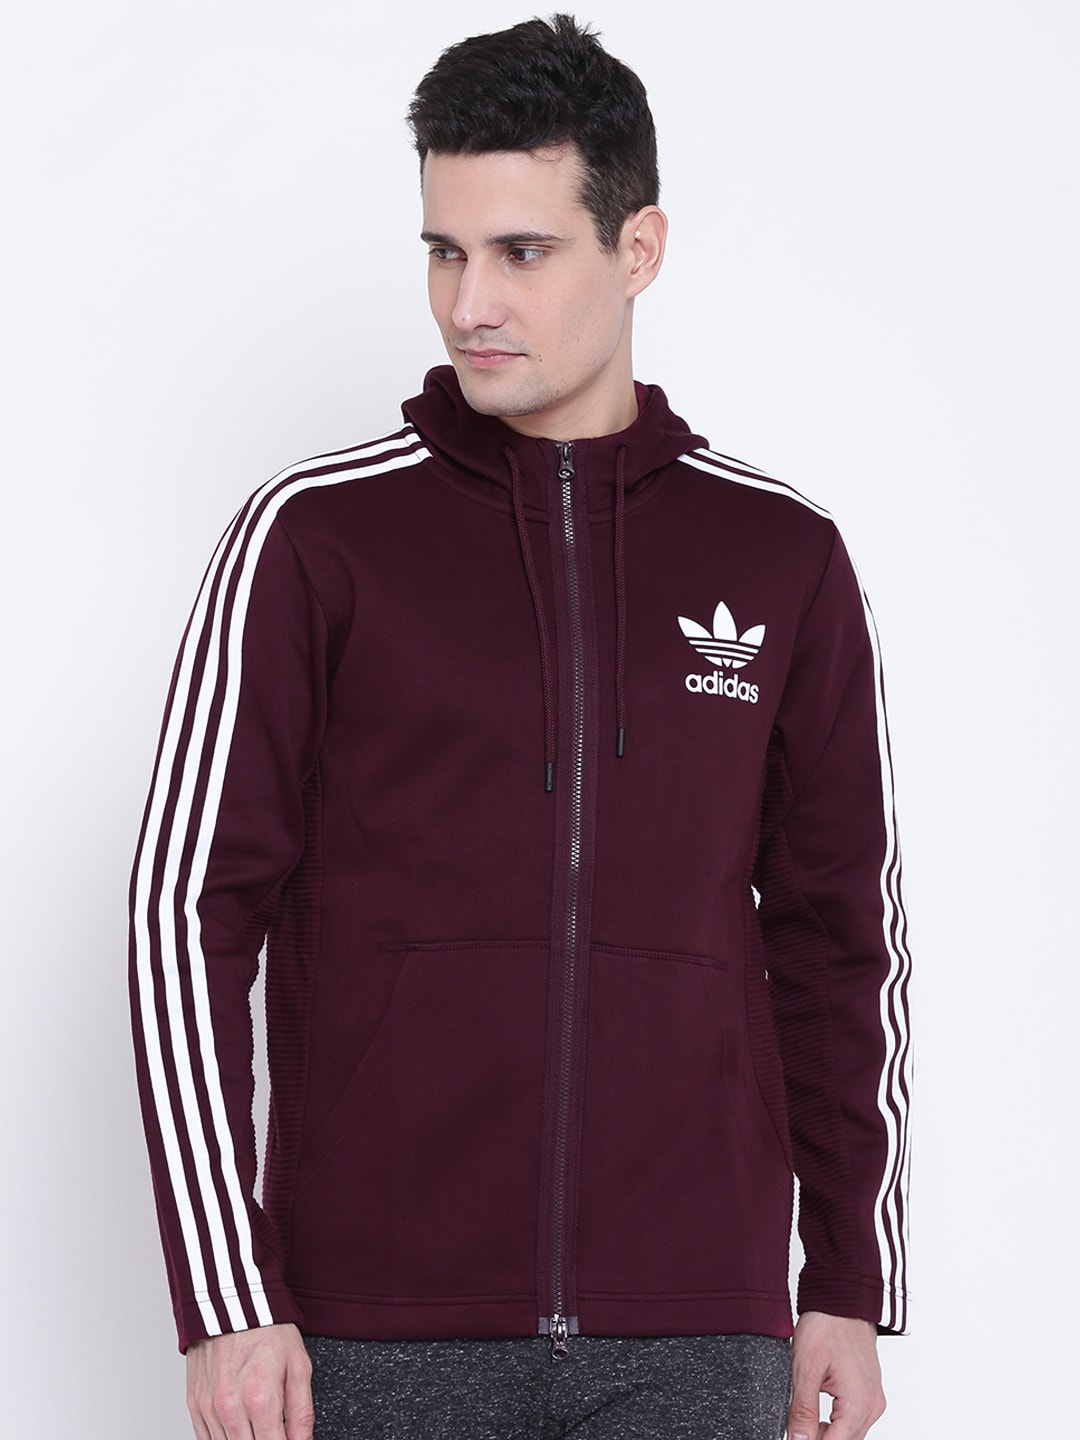 a53728a64933 Adidas Originals Jackets Sweatshirts - Buy Adidas Originals Jackets  Sweatshirts online in India